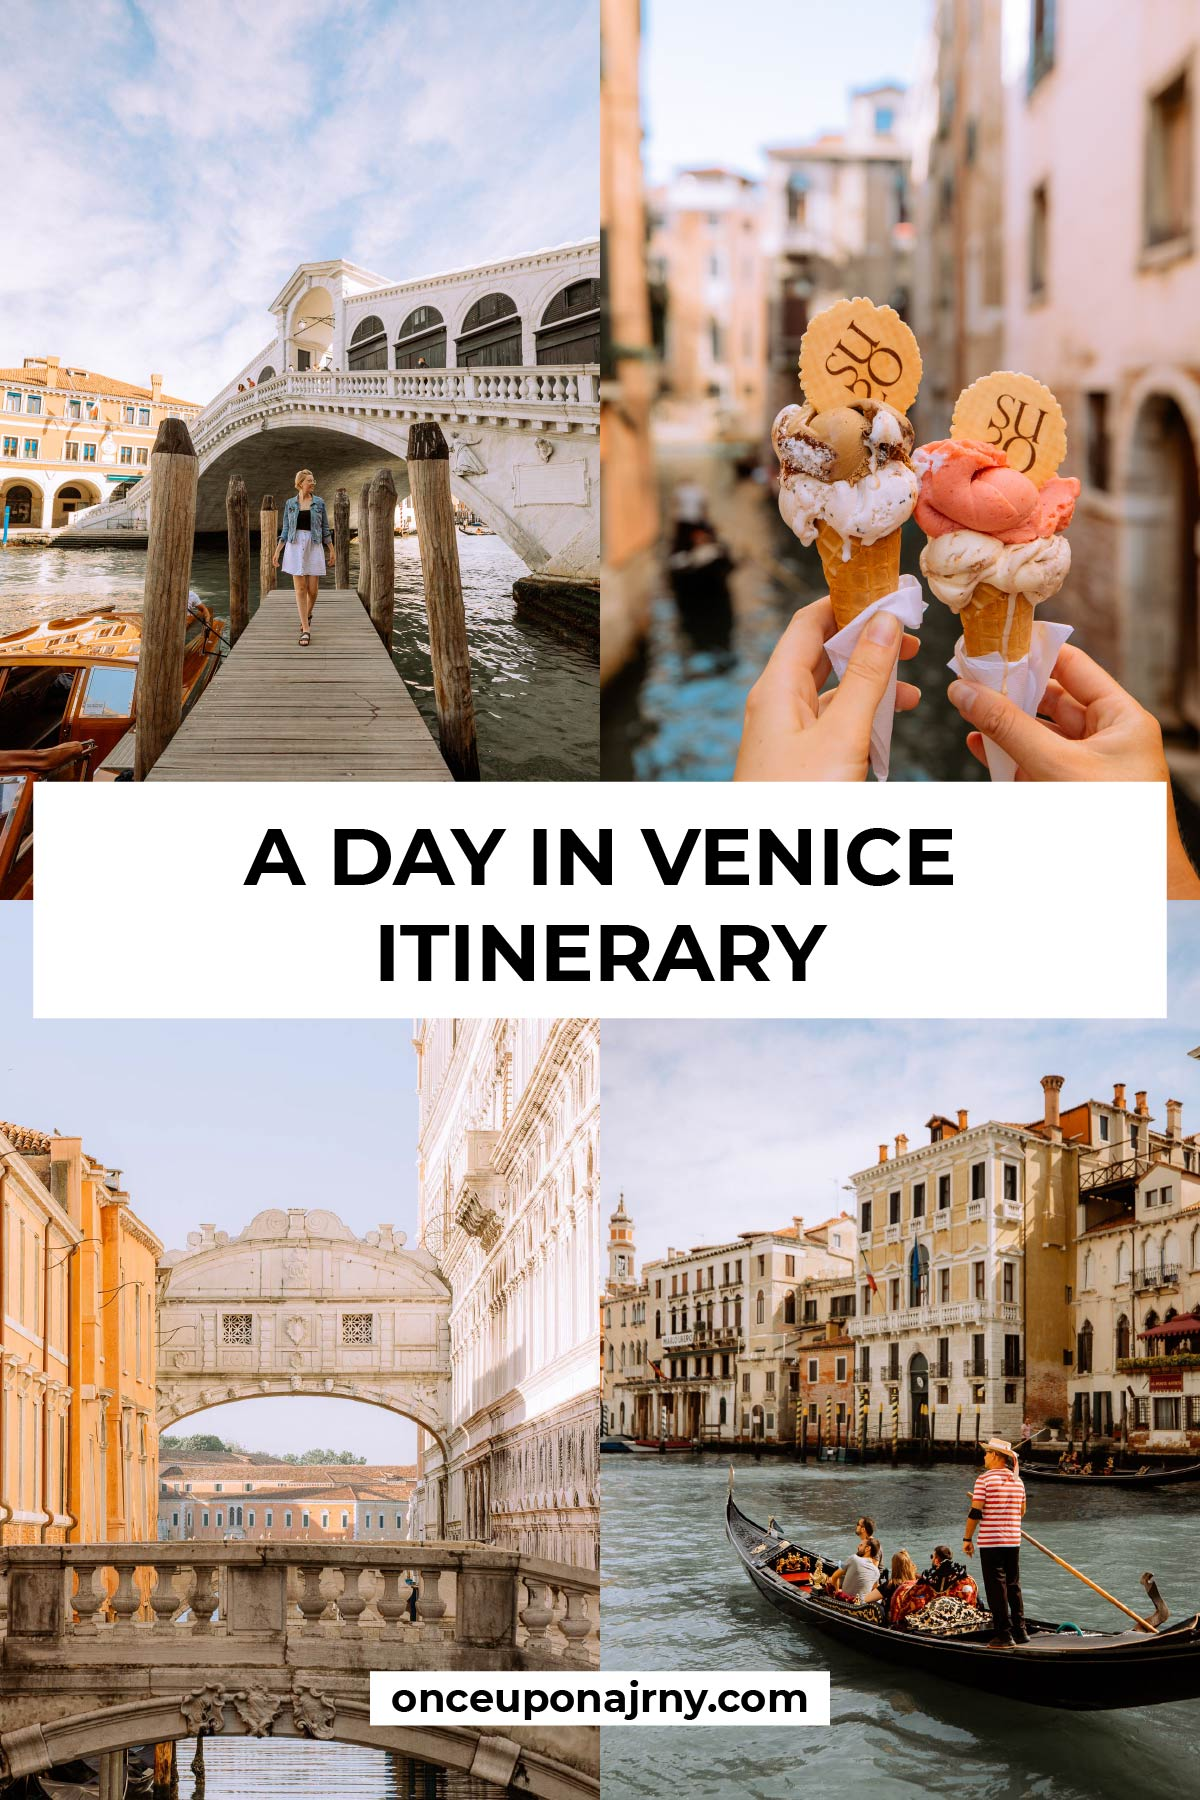 A Day In Venice Itinerary